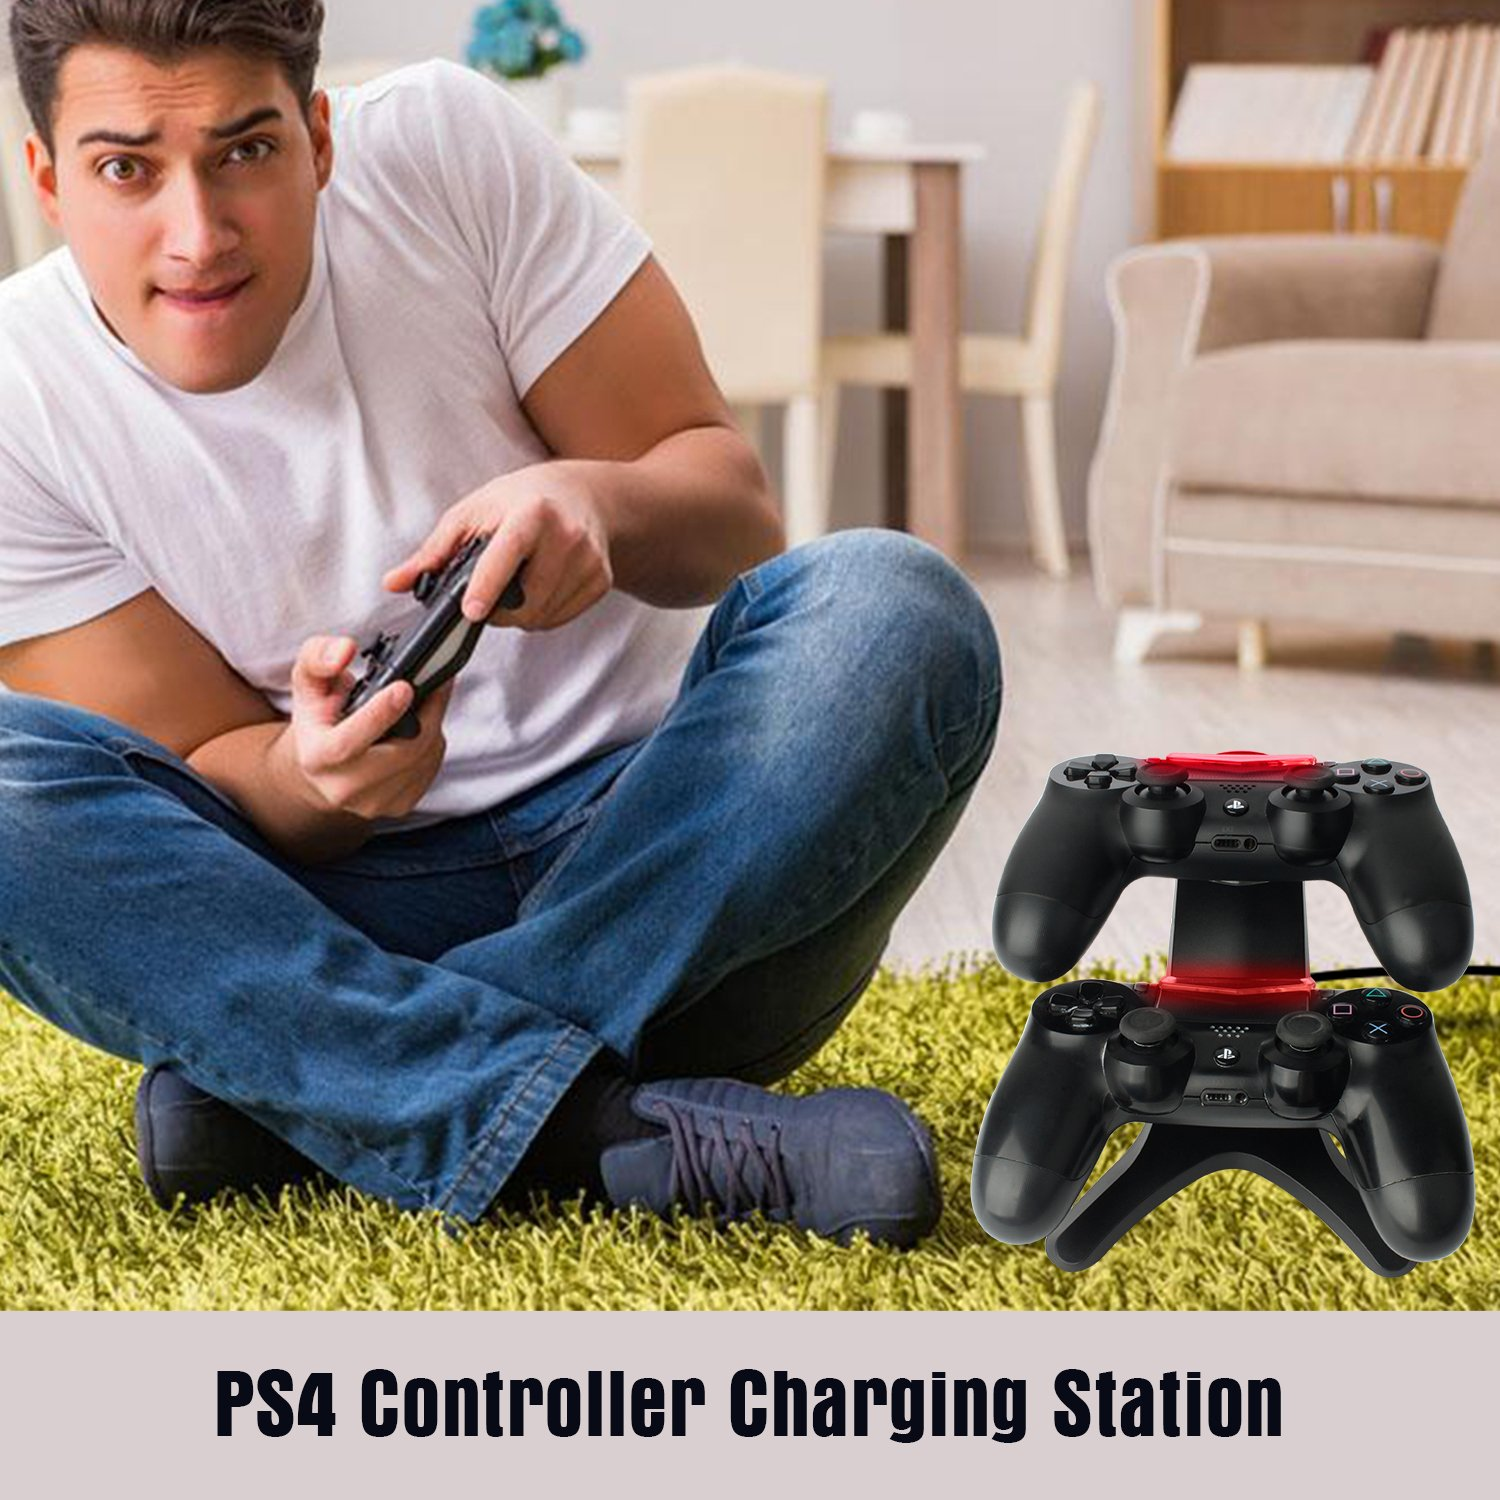 Y Team PS4 Controller Charging Station, PS4 Controller Charger Playstation 4 Controller Dual USB Charging Docking Station Stand PS4, PS4 Slim, PS4 Pro Controller